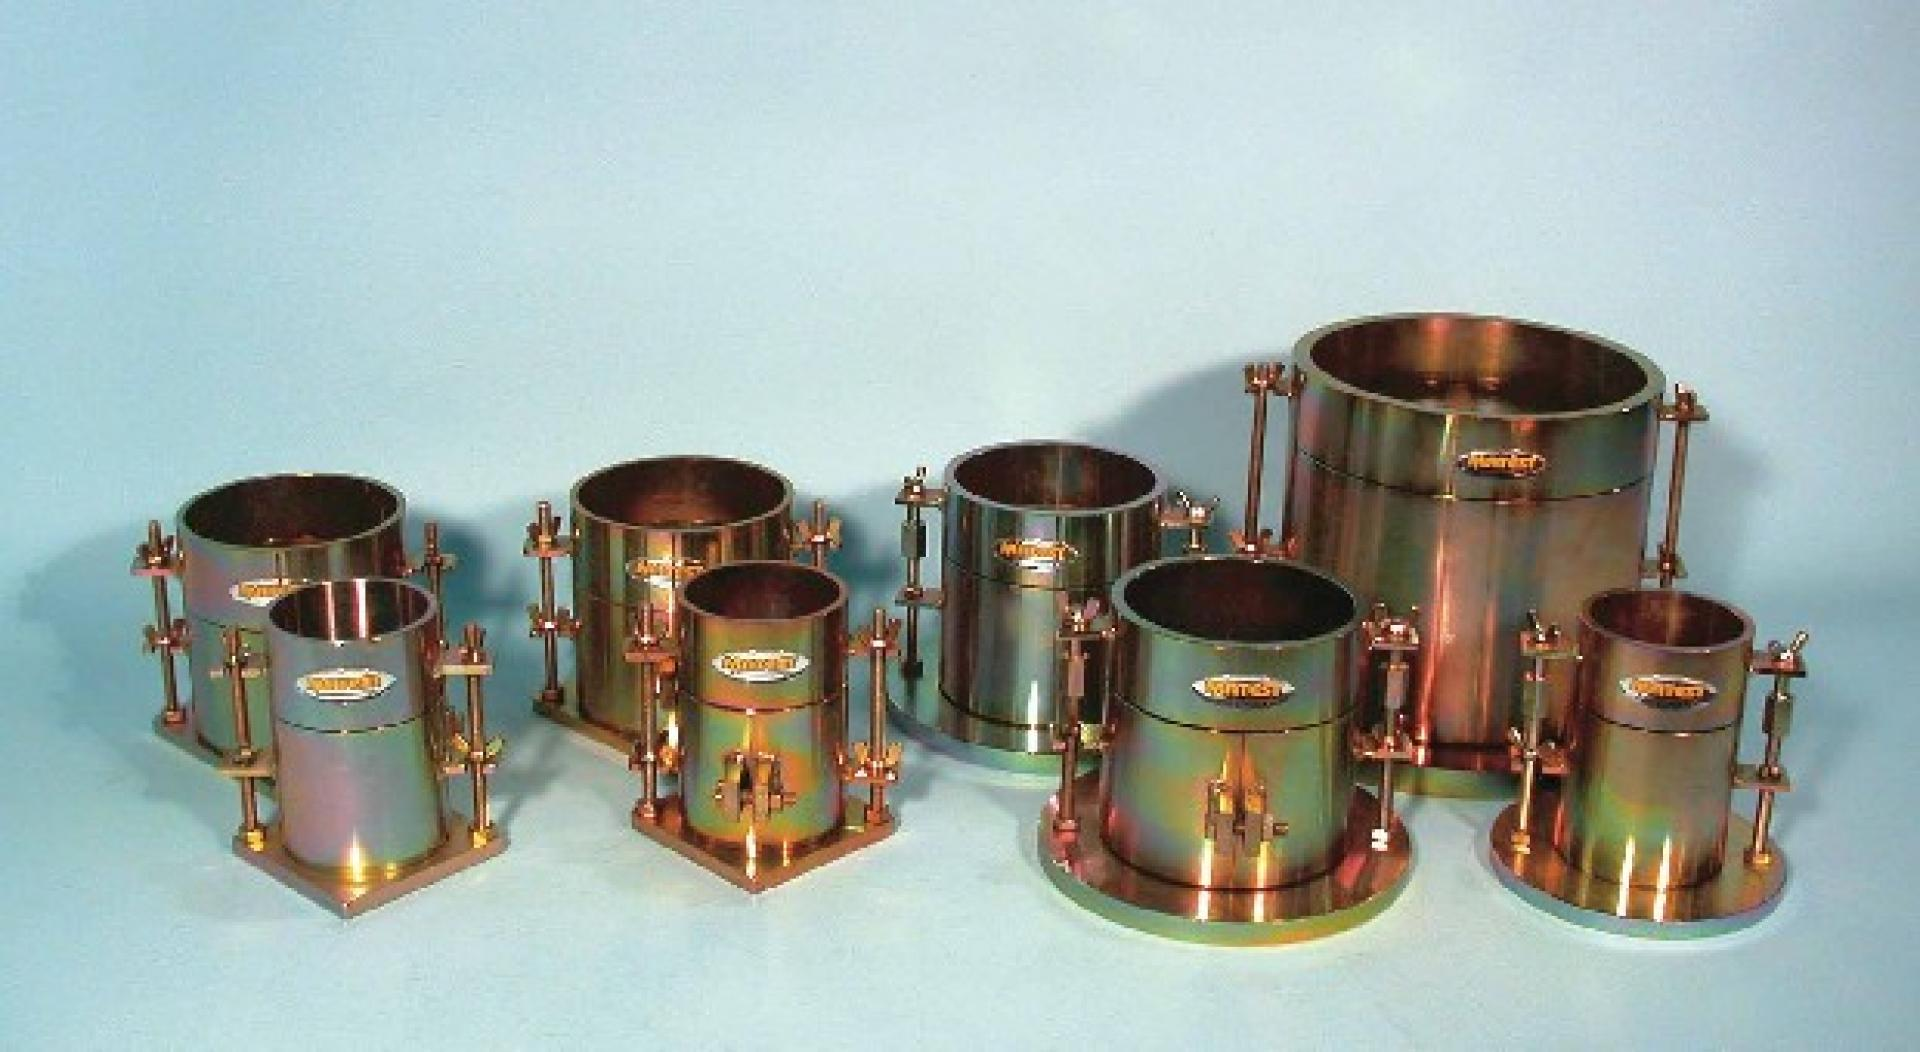 Proctor Moulds and Rammers, ASTM/AASHTO